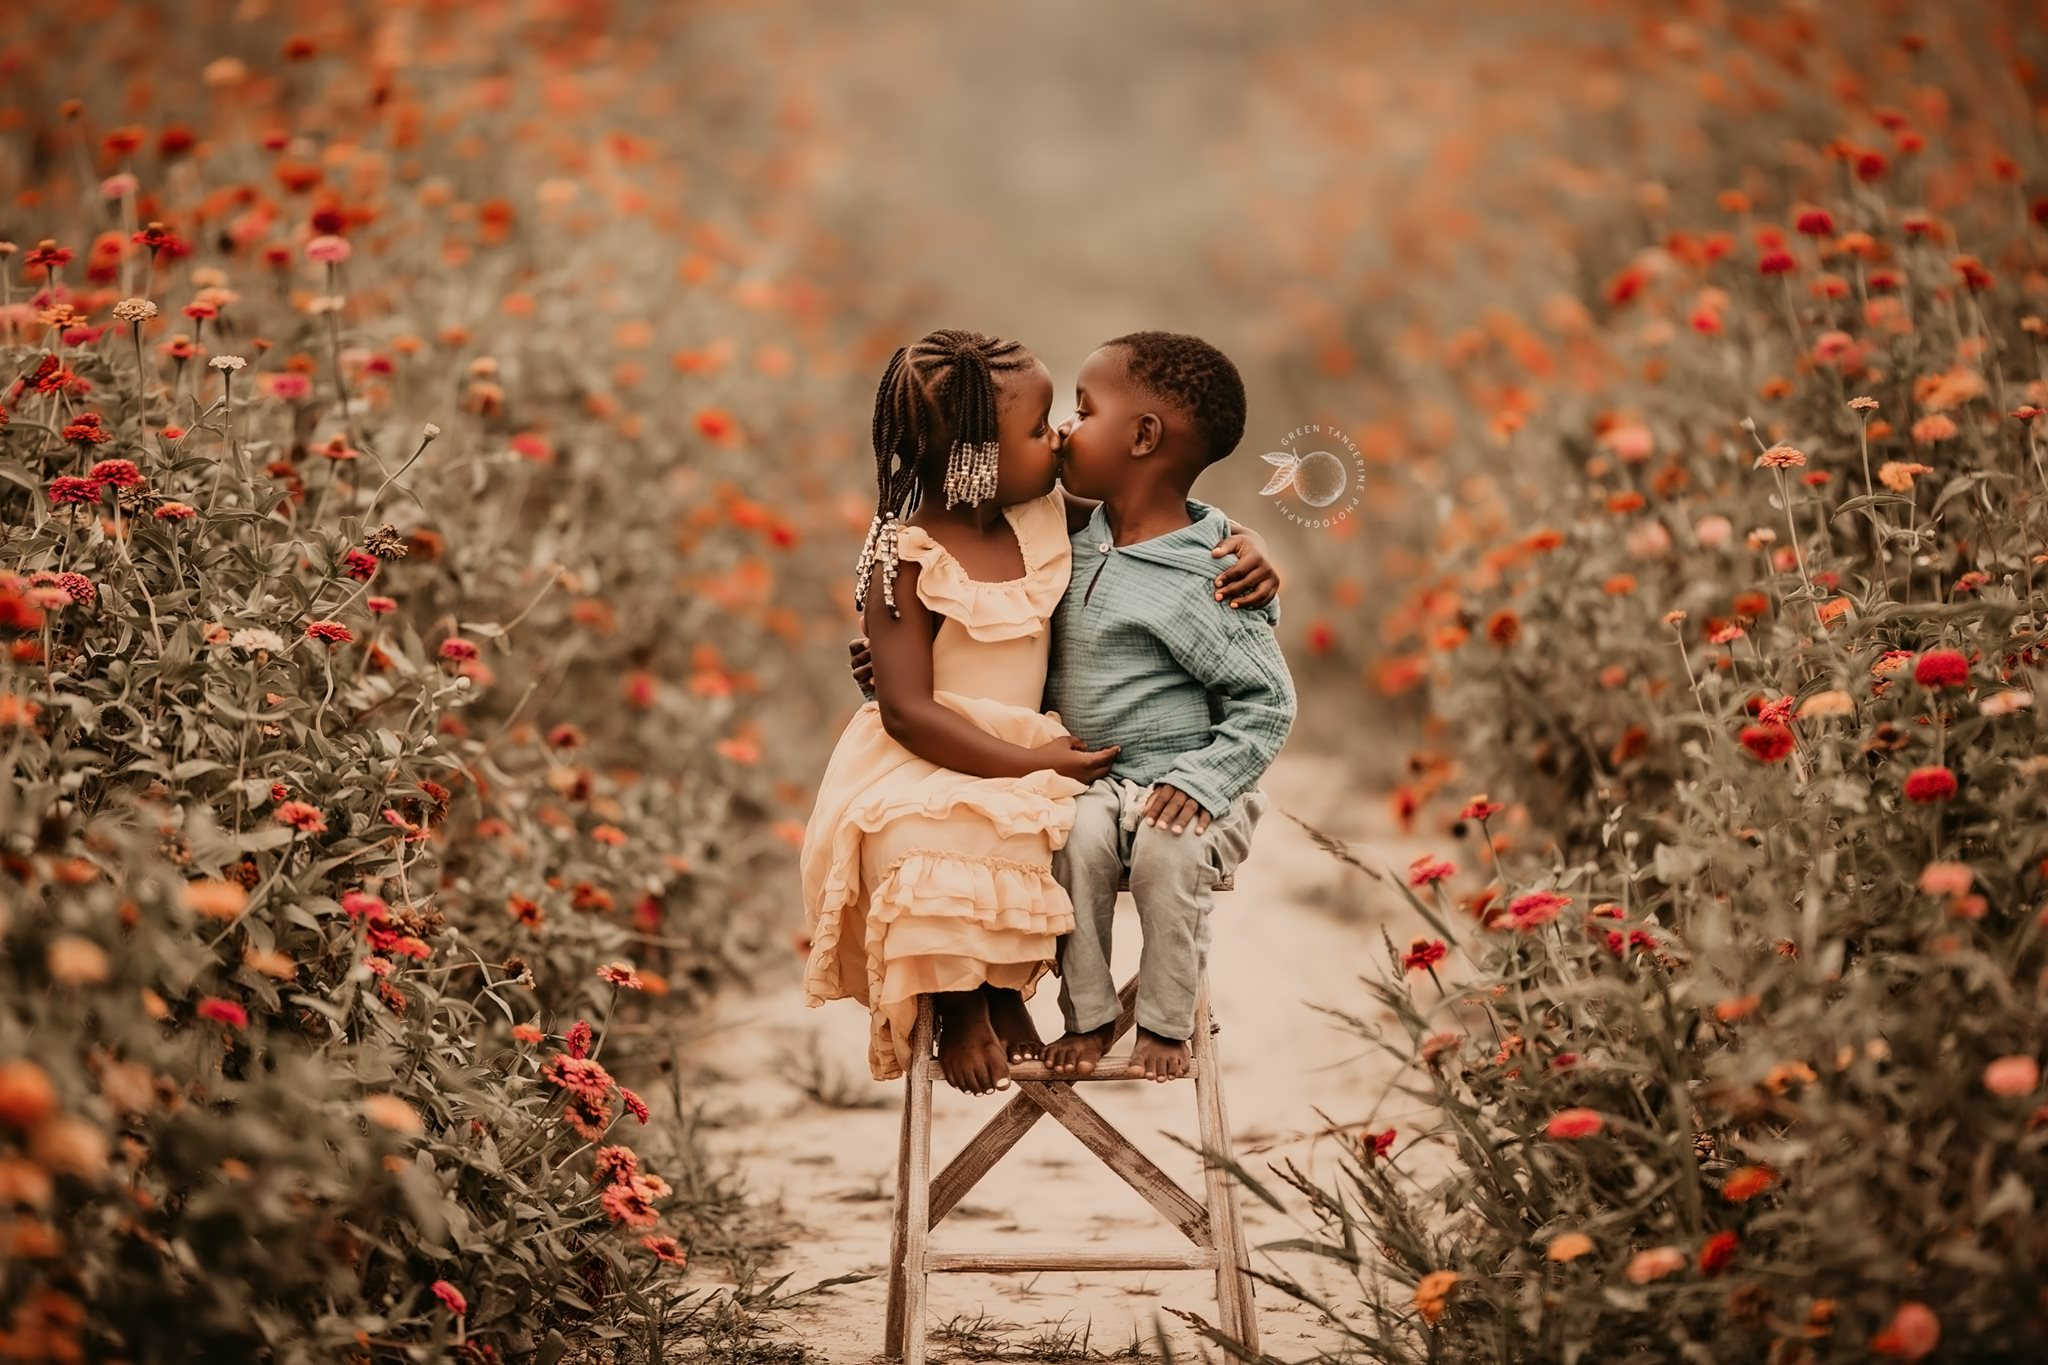 The 91 Best Kids Portraits Of 2020